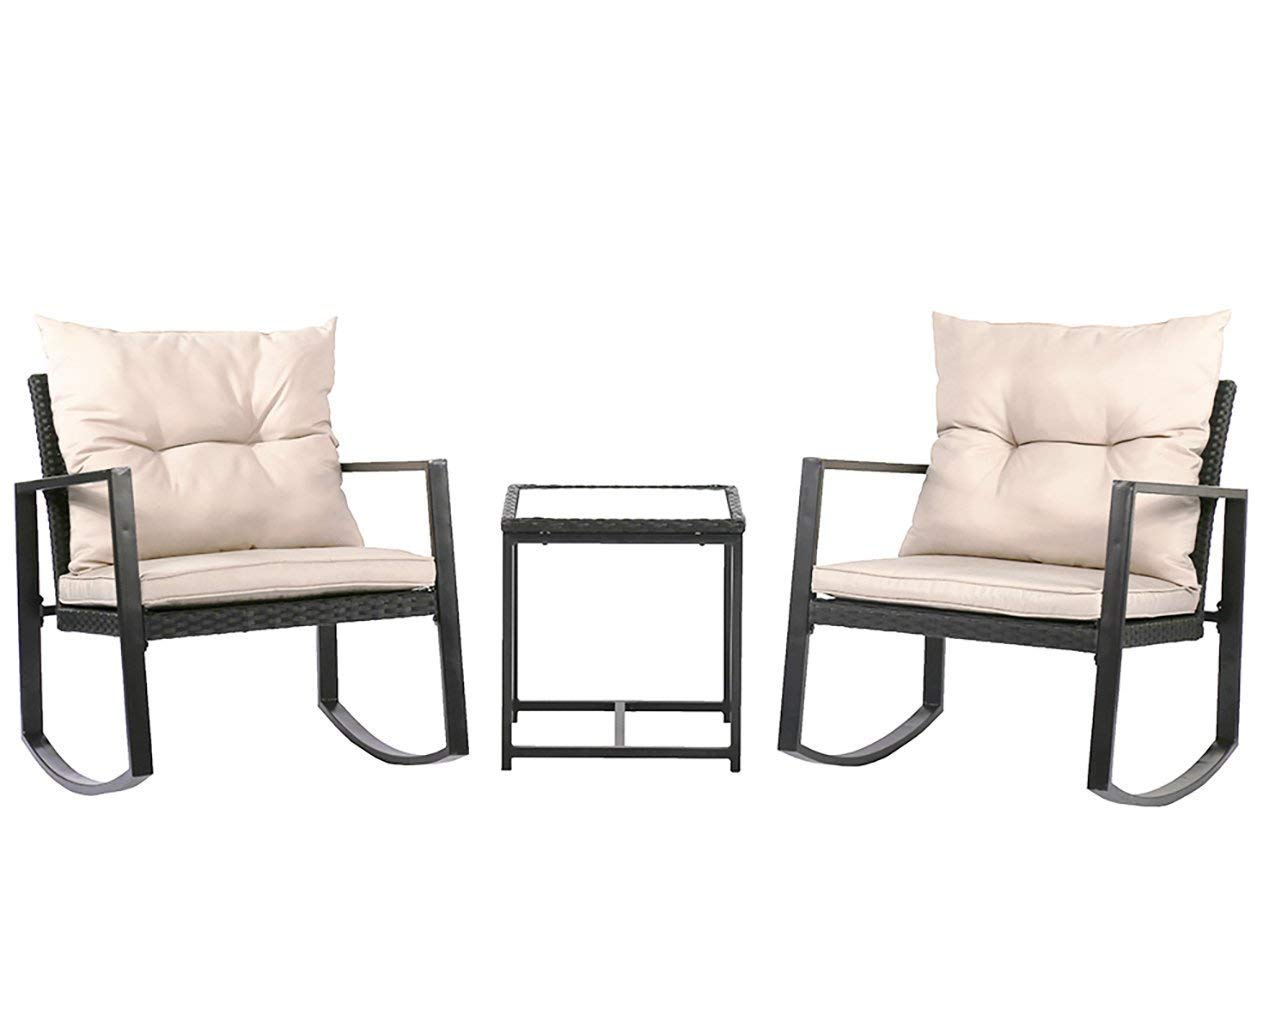 Outdoor 3PC Rocking Bistro Set Patio PE Rattan Wicker Sofa Sectional Furniture Set with Cushion